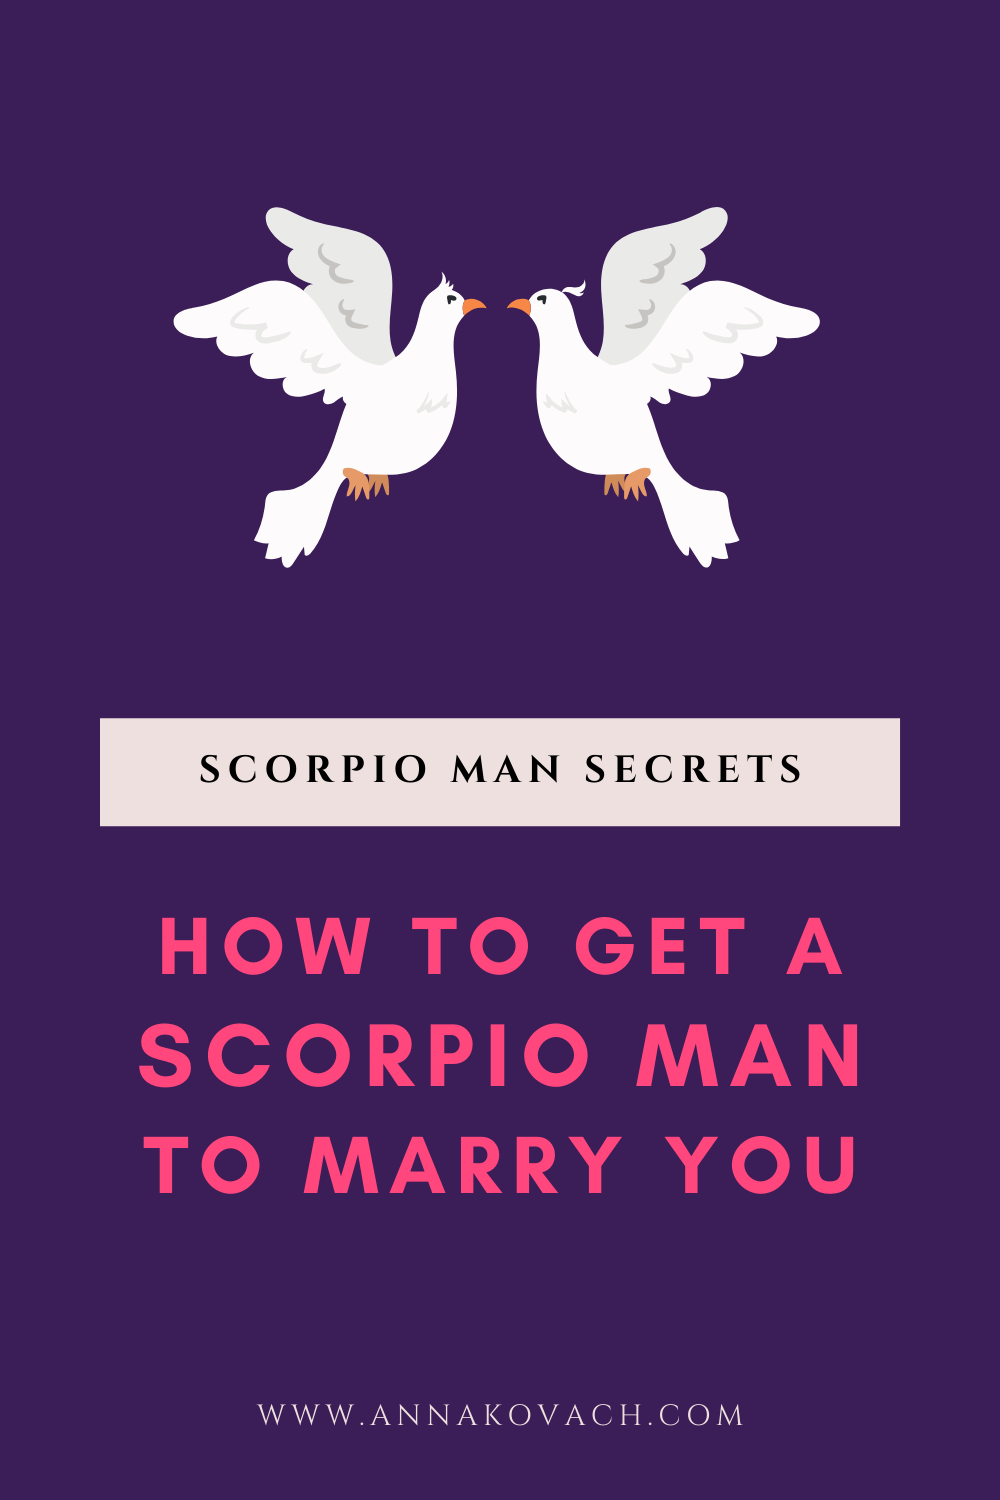 f7288f023e262385776d13bc09a9005e - How Do You Get Your Man To Marry You